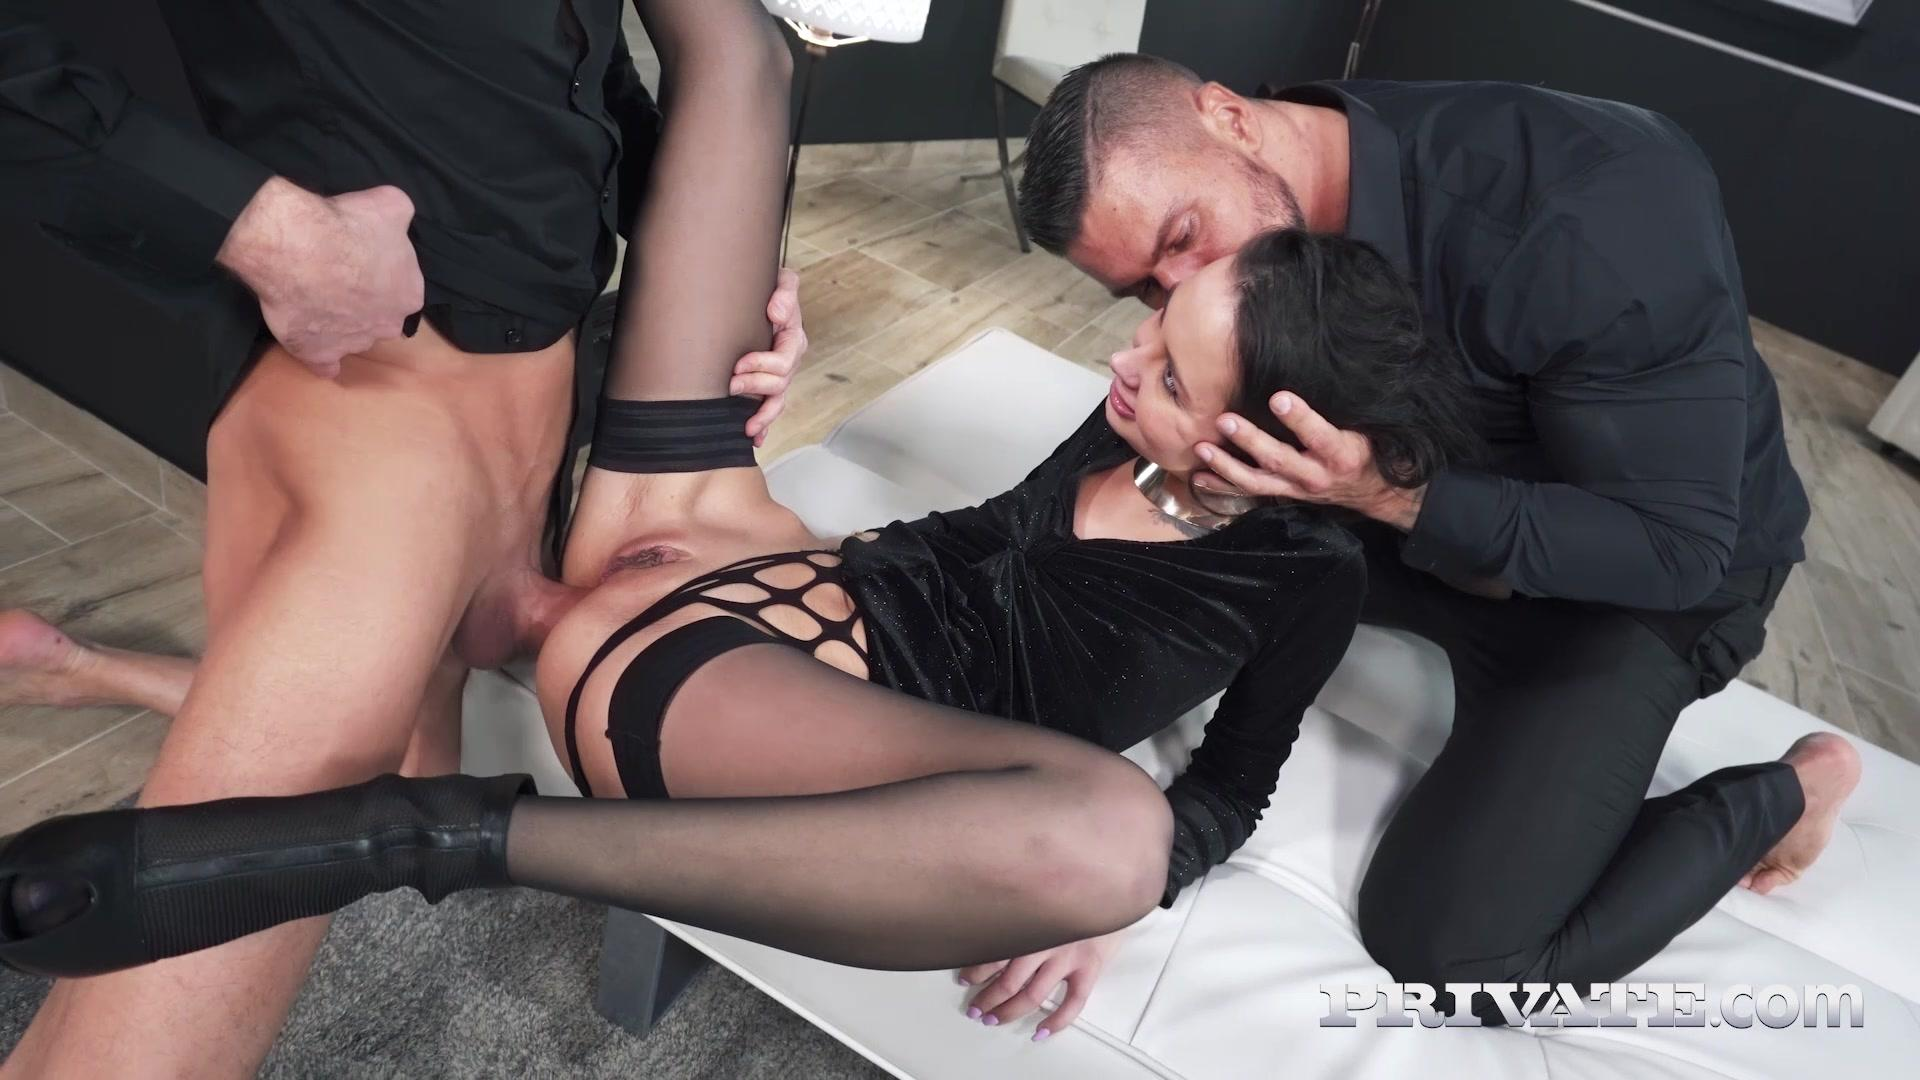 Private – Freya Dee Debuts With Extreme D P Threesome